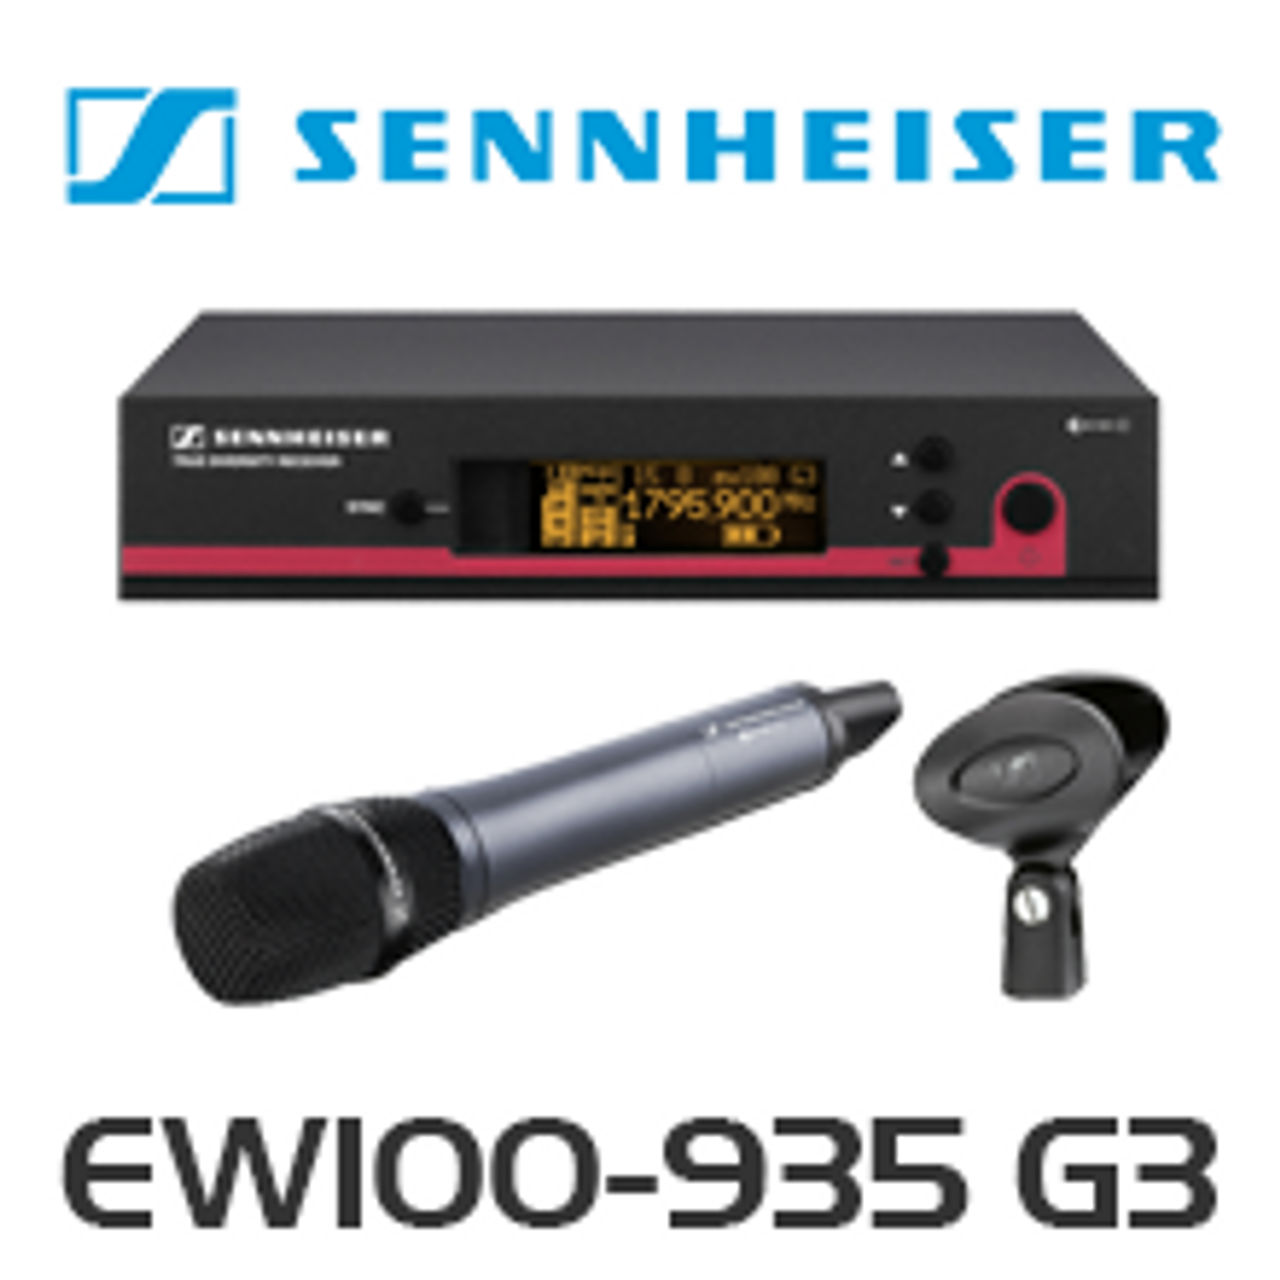 sennheiser true diversity receiver ew100 g3 manual